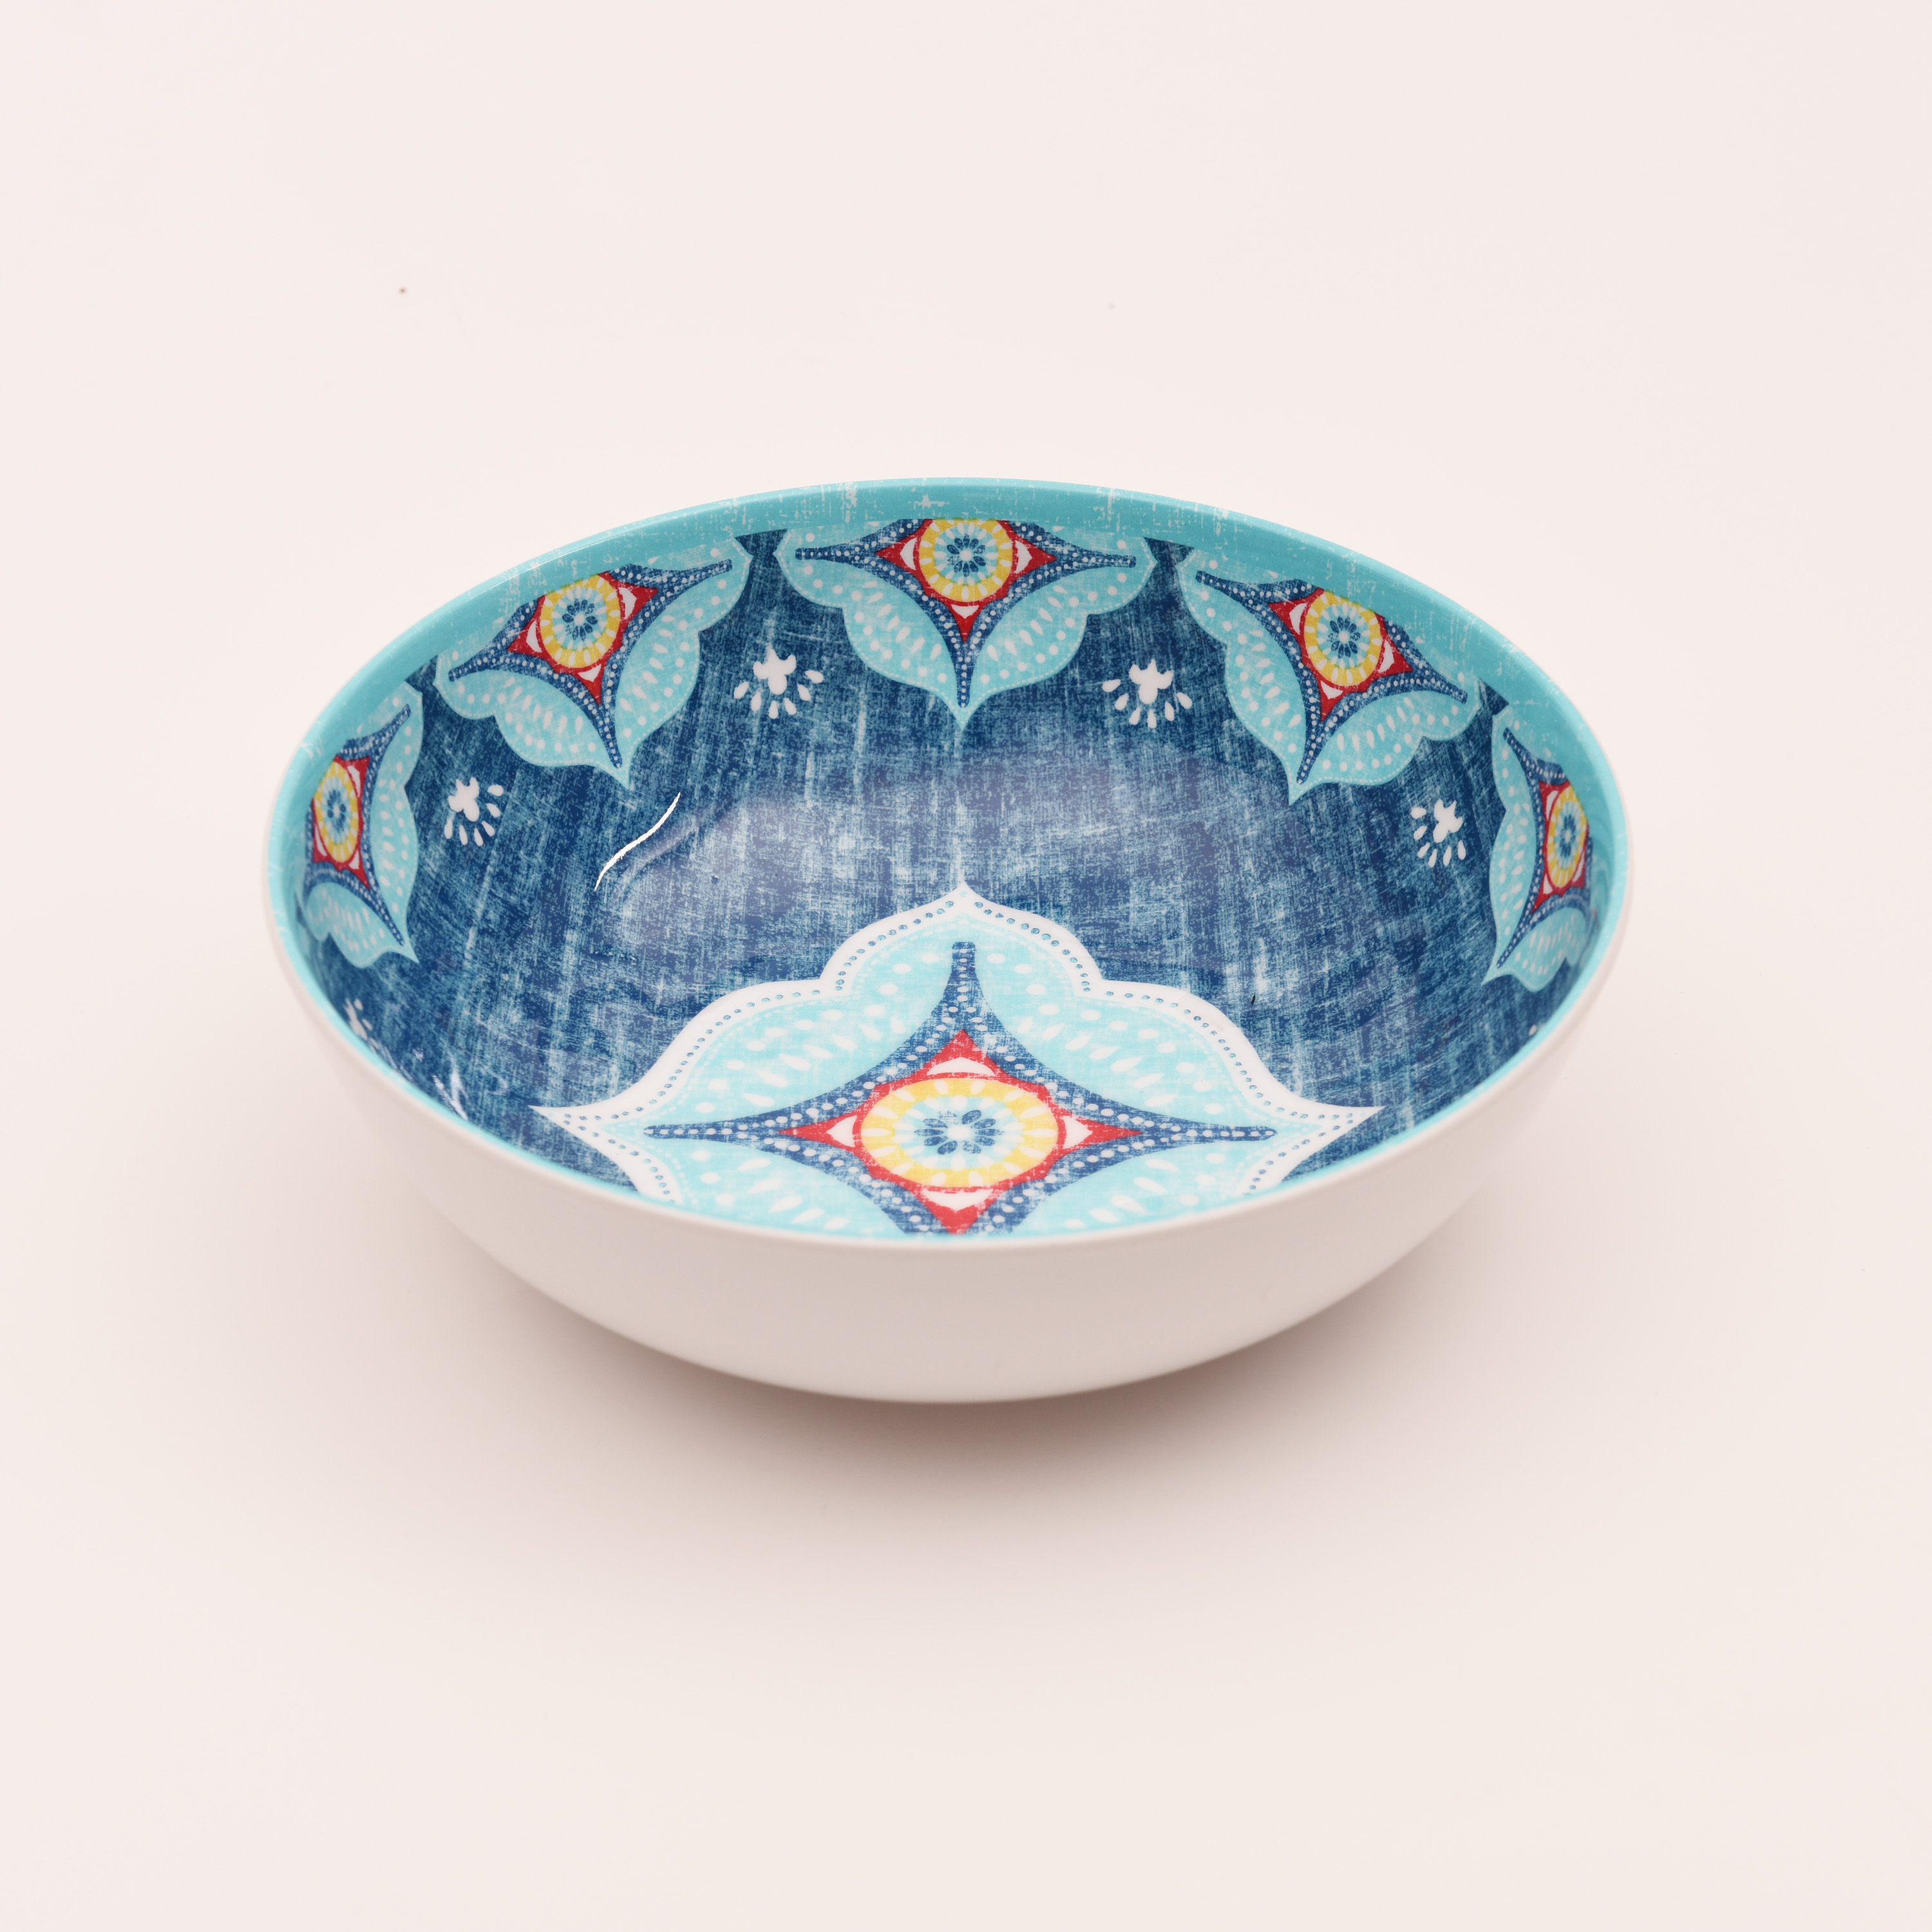 Better Homes and Gardens Blume Quatrefoil Cereal Bowl, Blue